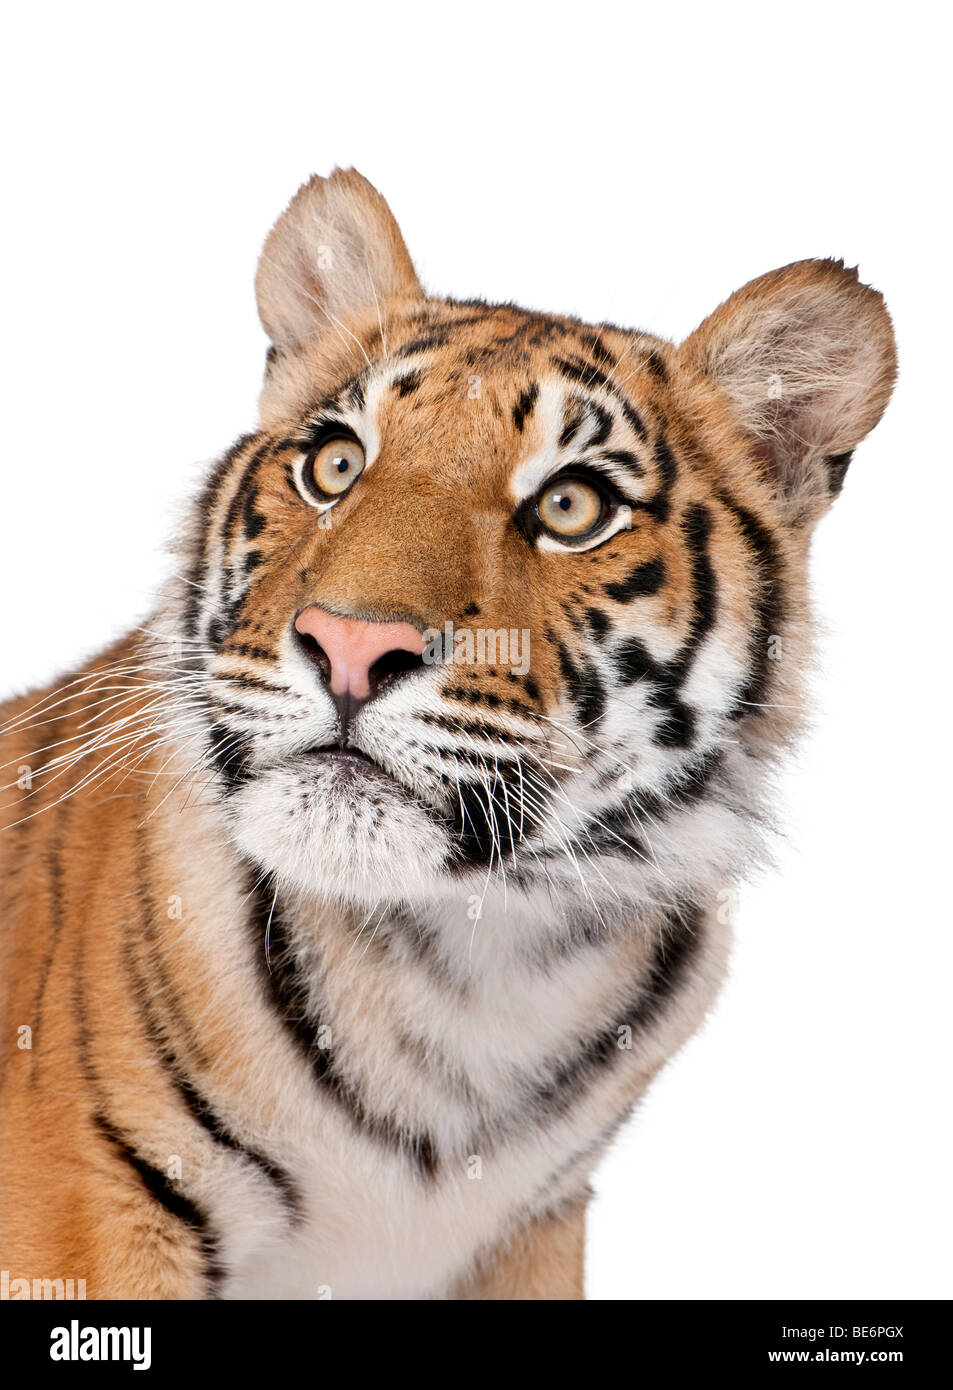 Close-up portrait of Bengal tiger, Panthera tigris tigris, 1 year old, in front of white background, studio shot - Stock Image